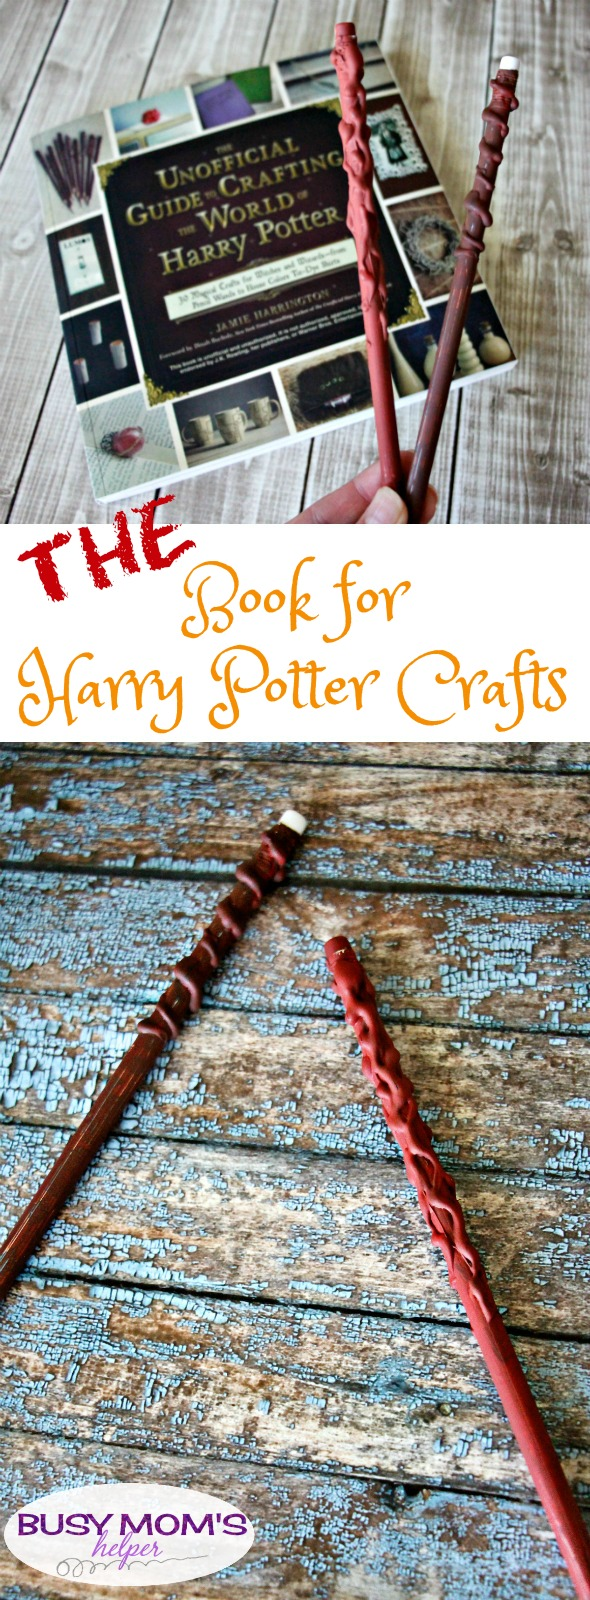 Harry potter archives busy moms helper the book for harry potter crafts the perfect gift for any harry potter fan solutioingenieria Images